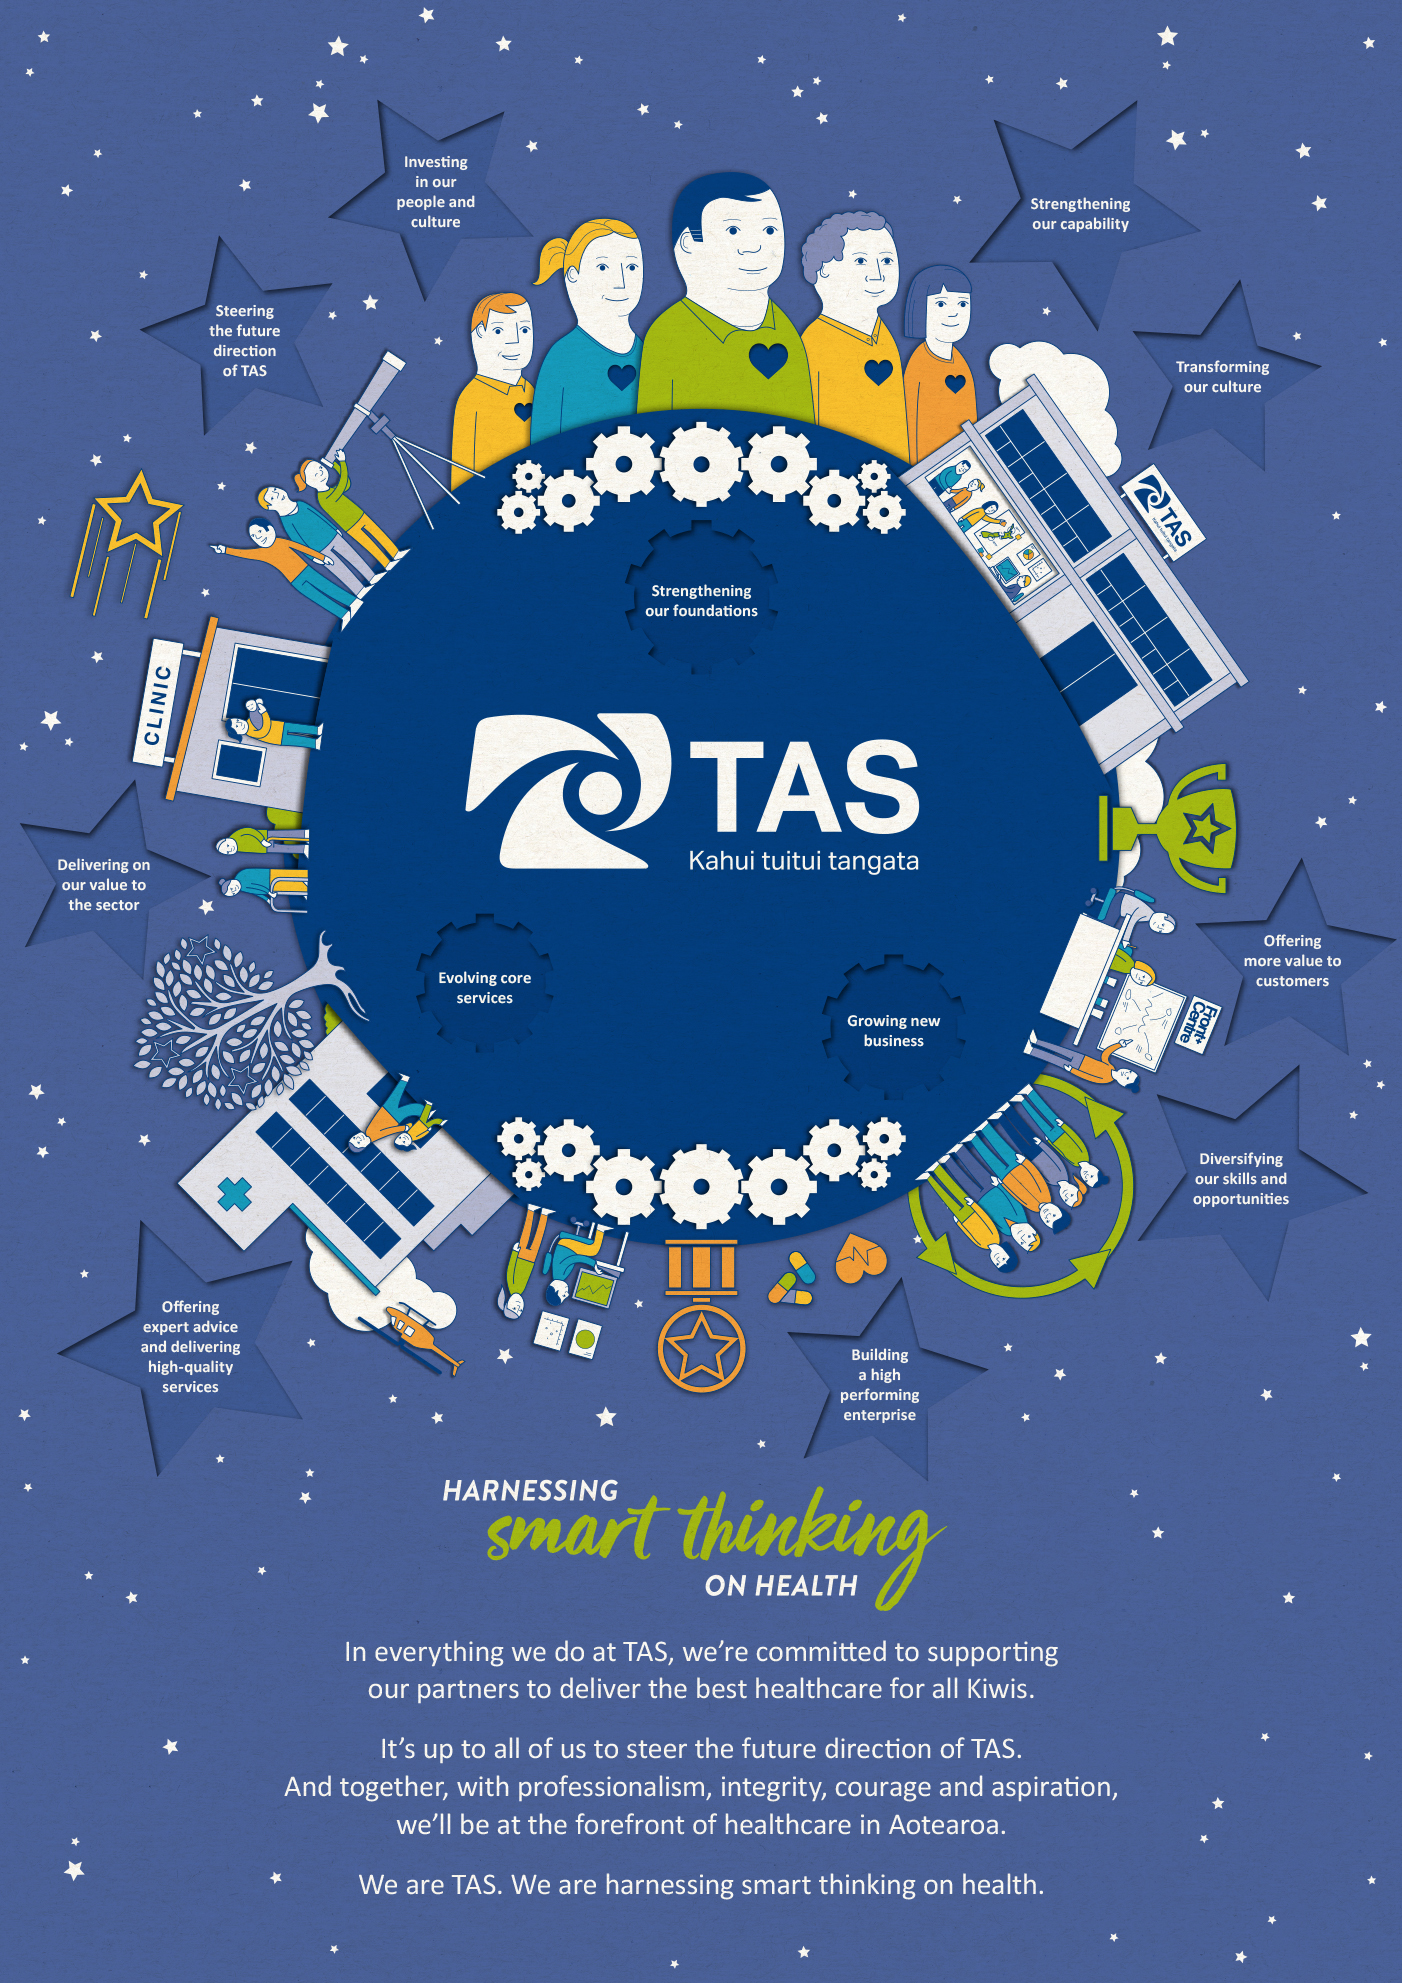 TAS harnessing smart thinking on health poster